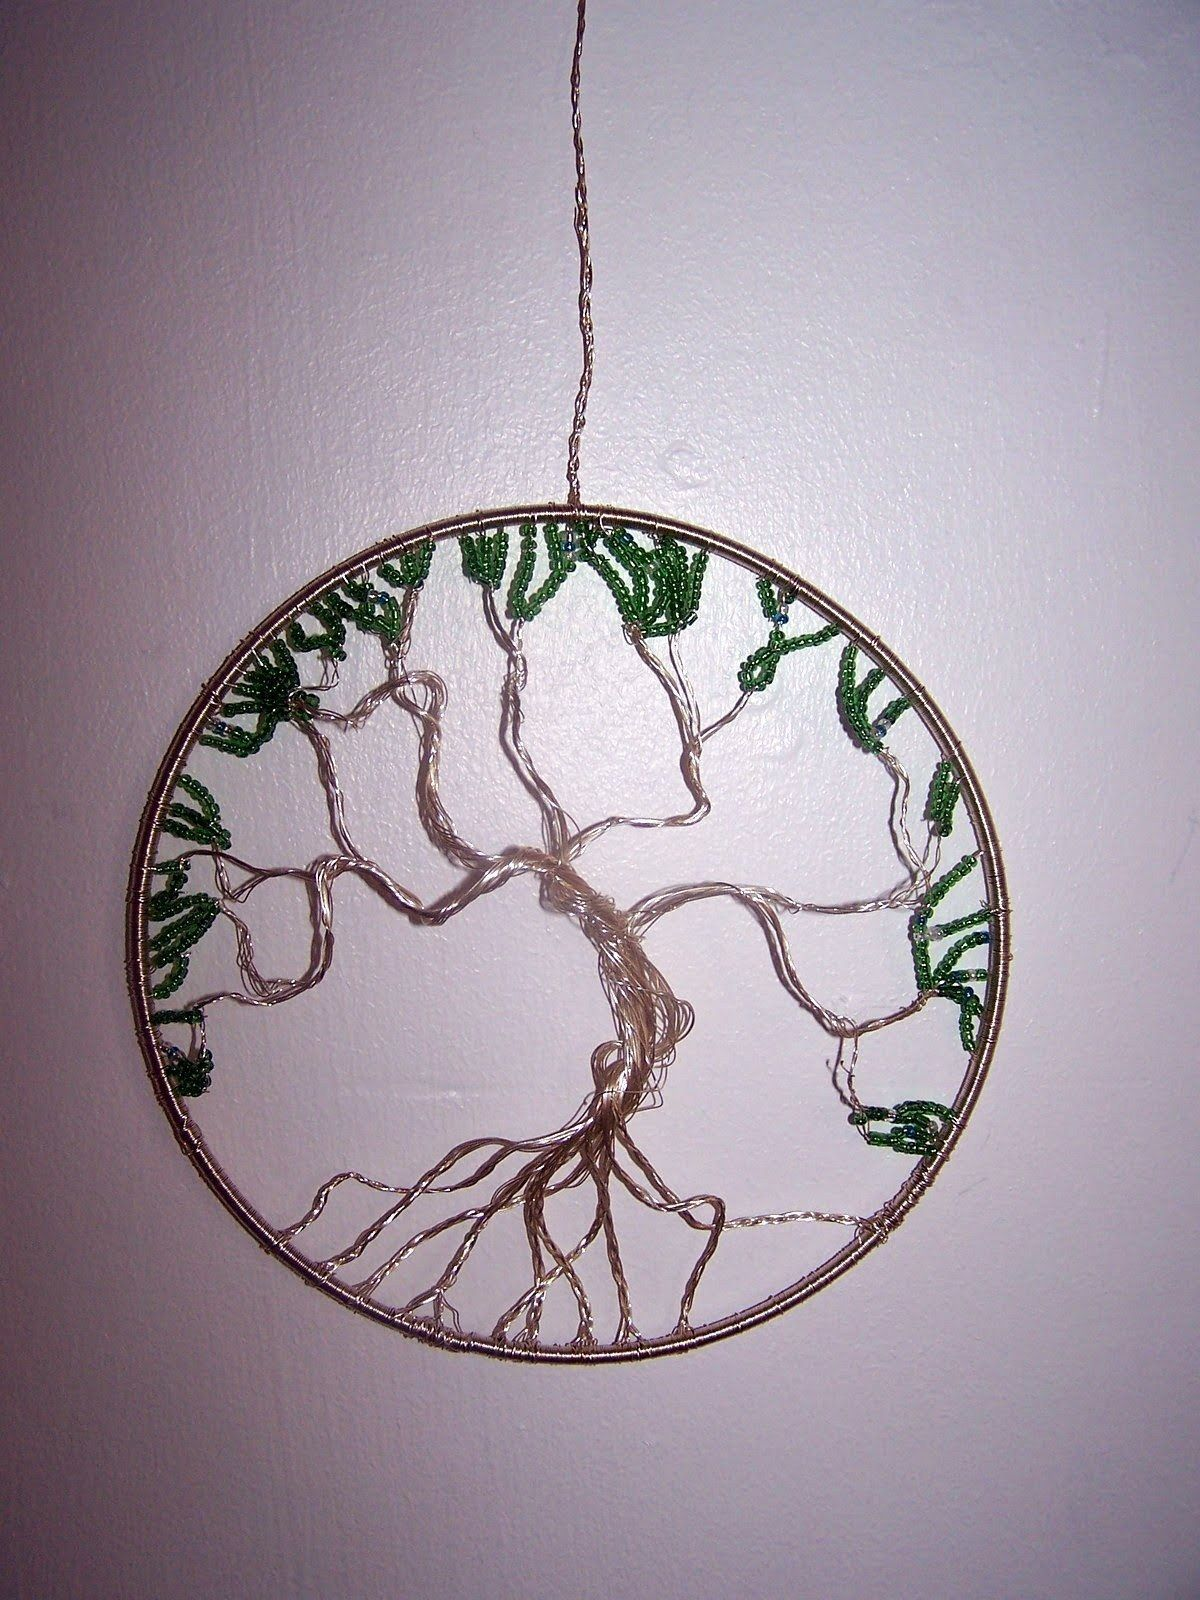 Based on Wire Wrapped Tree Of Life Ornament by Lisa H. | Wire ...